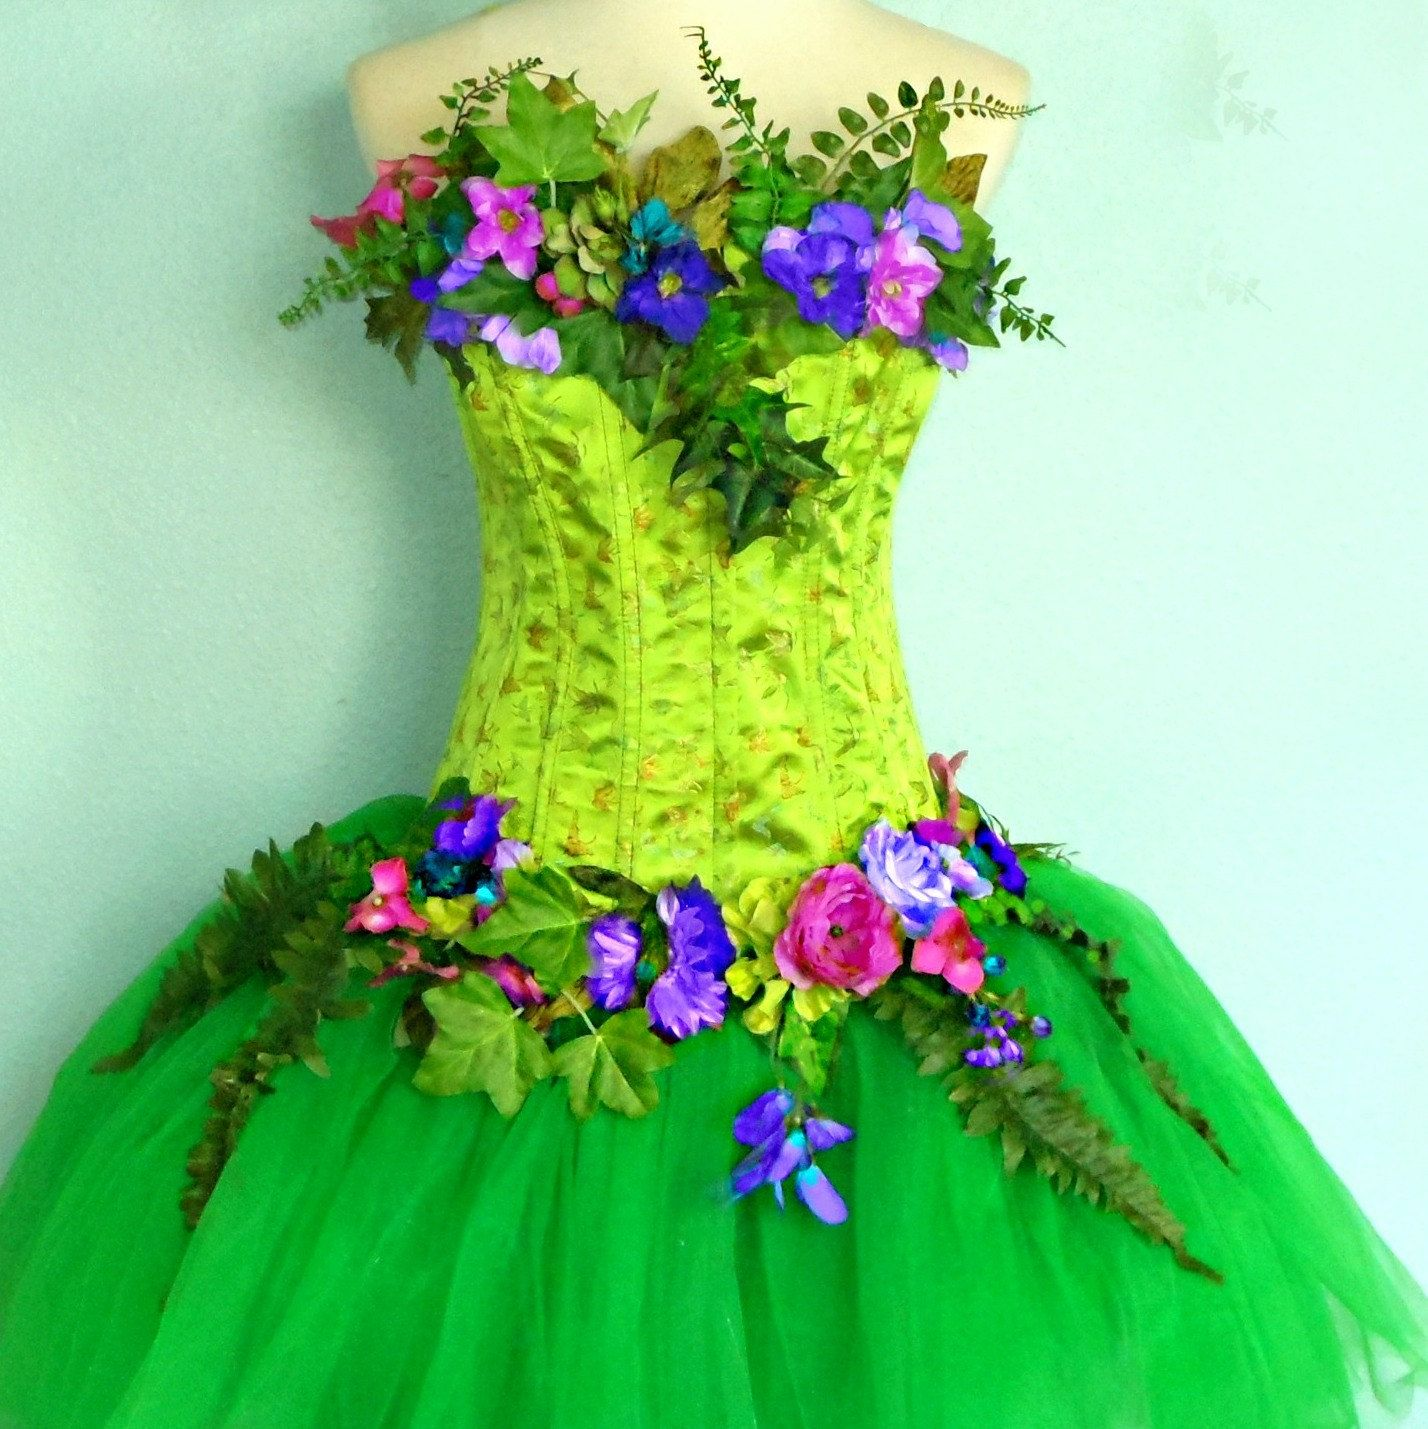 Nature Dress: Homemade Mother Nature Costume